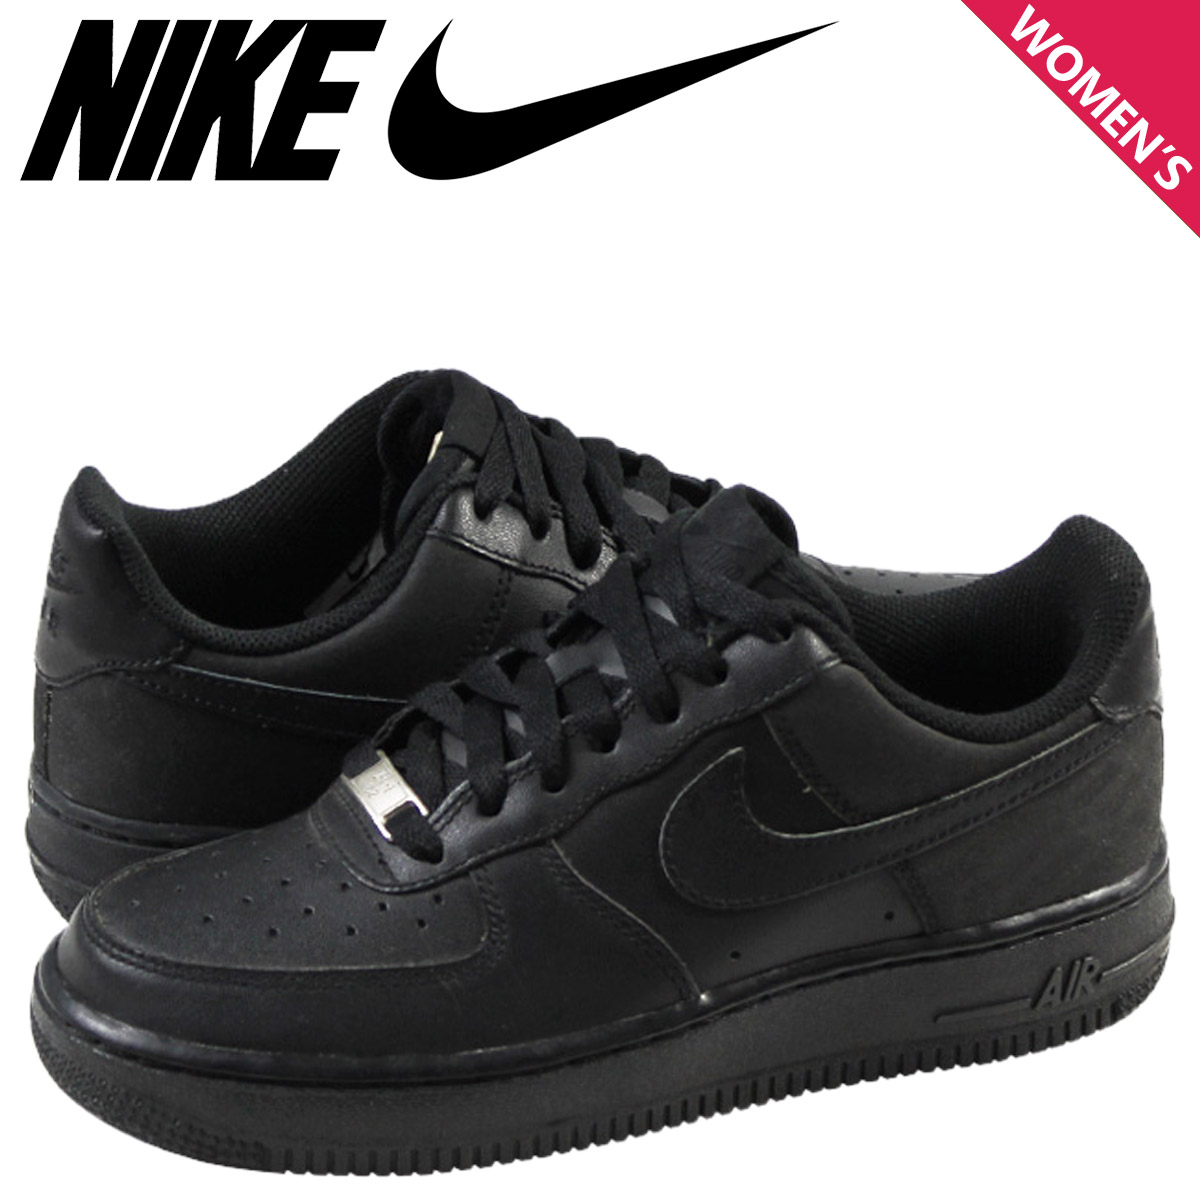 nike shoes air force 1 girl